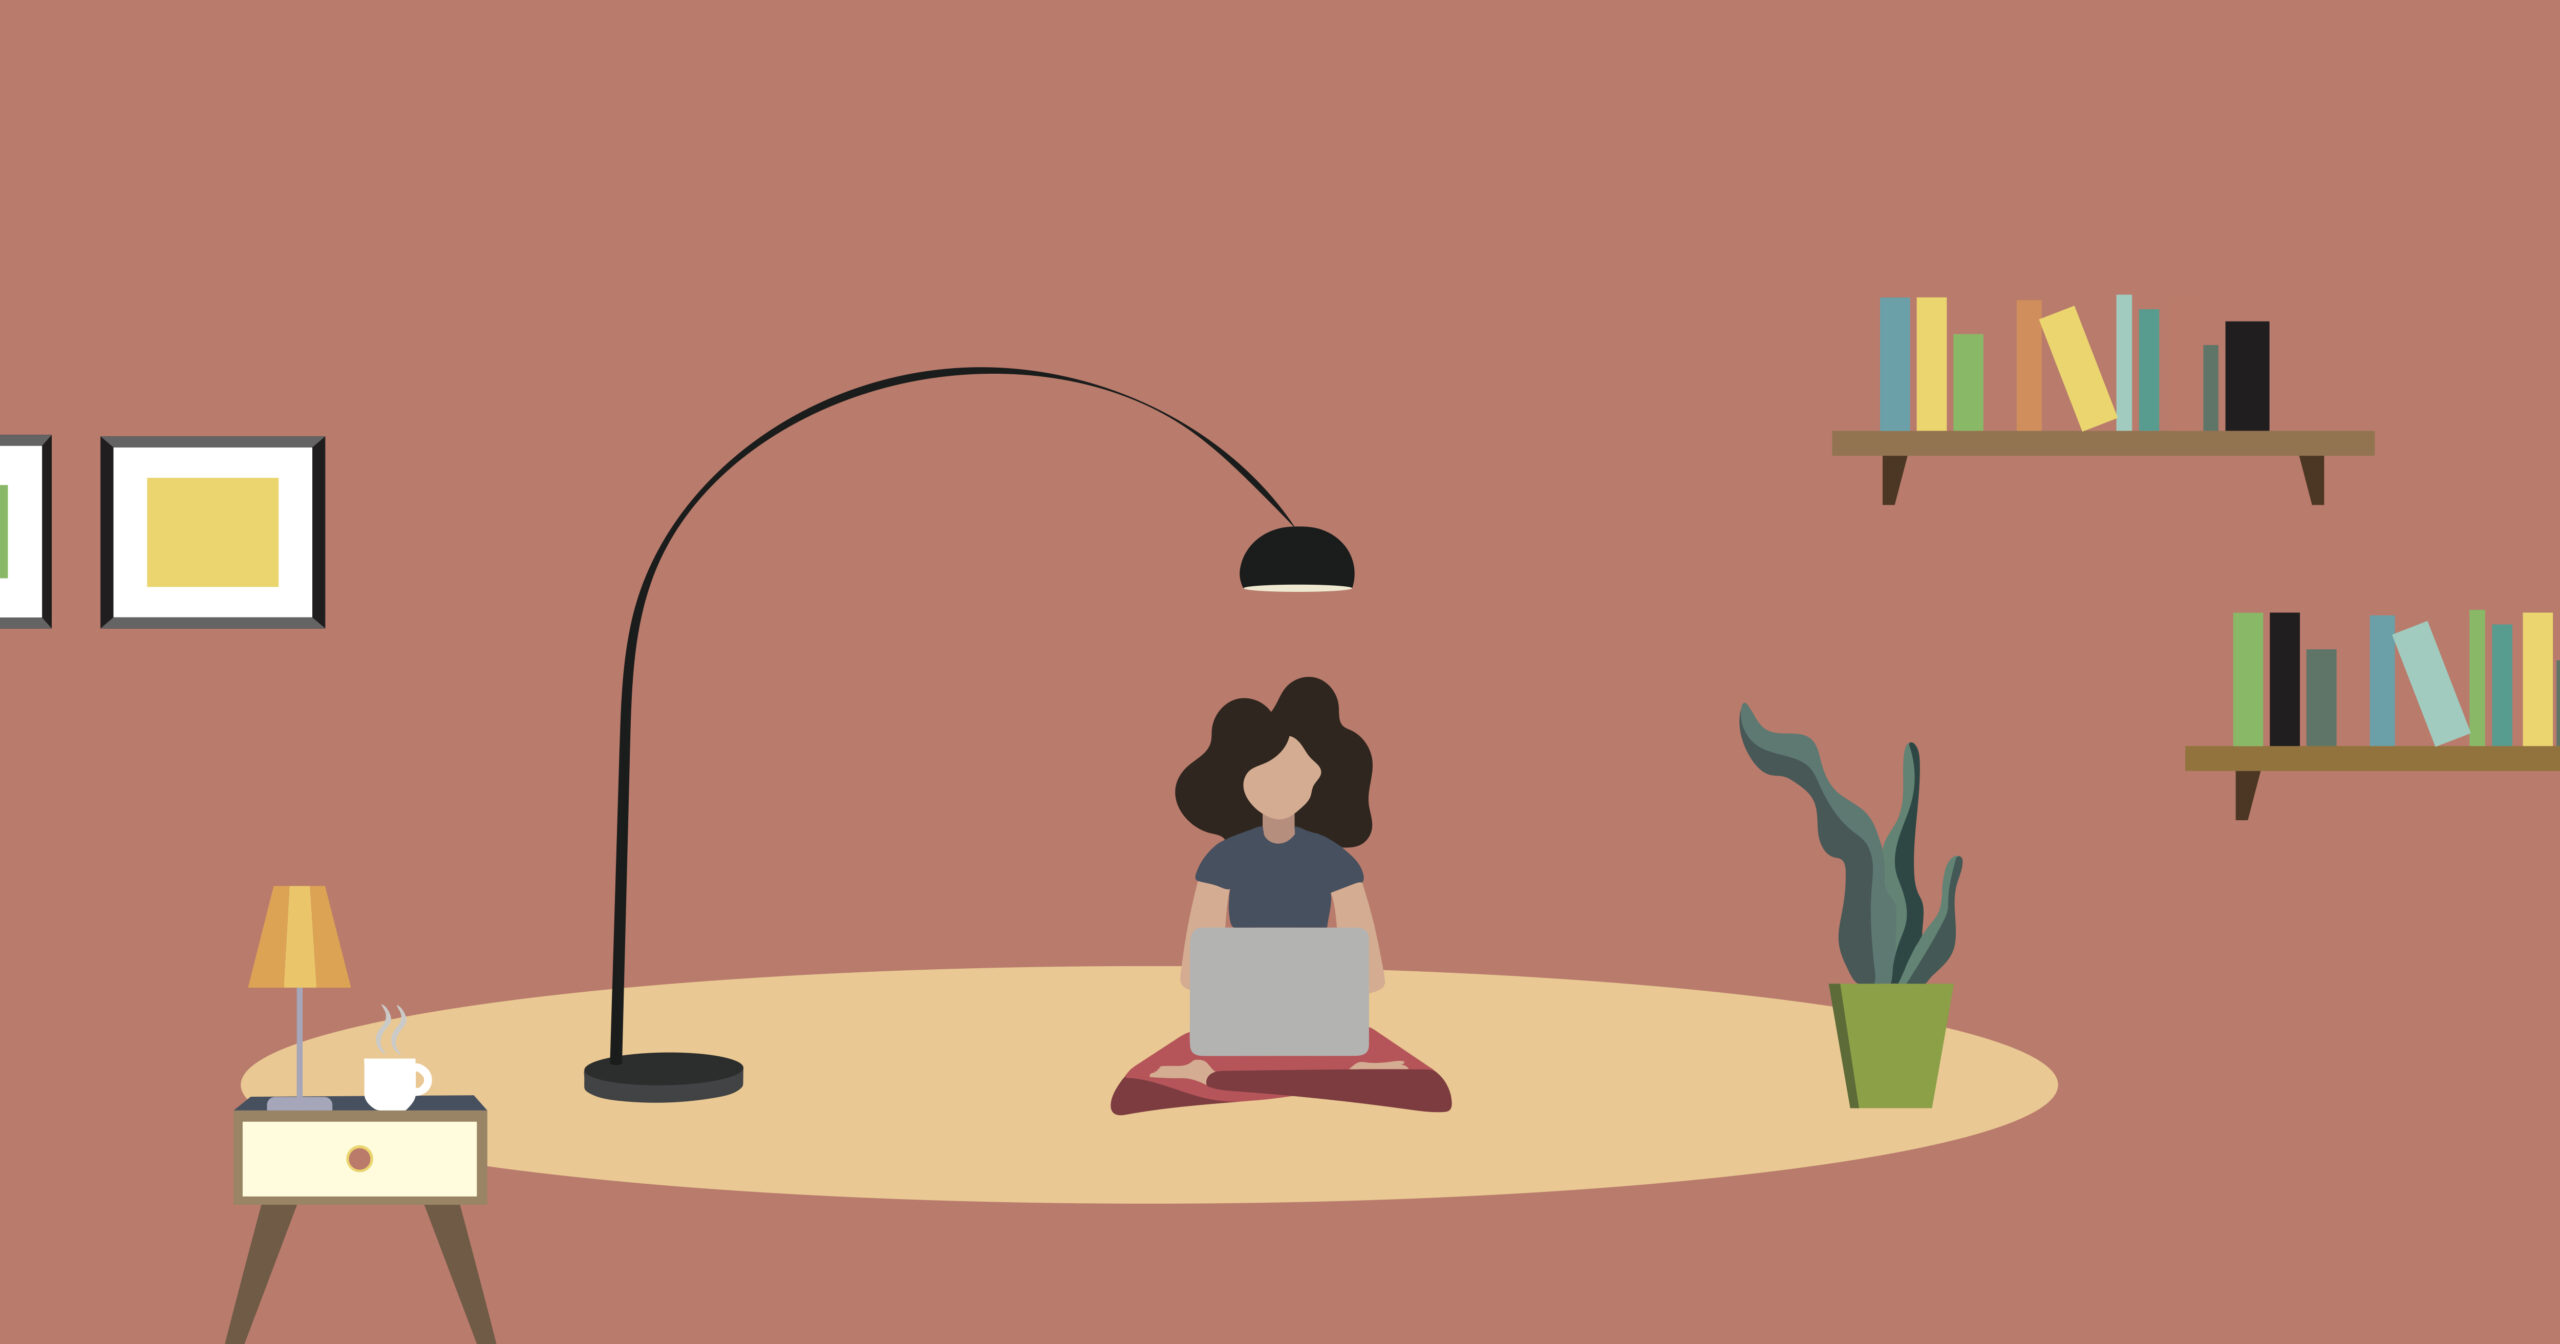 Illustration of woman sitting in living room